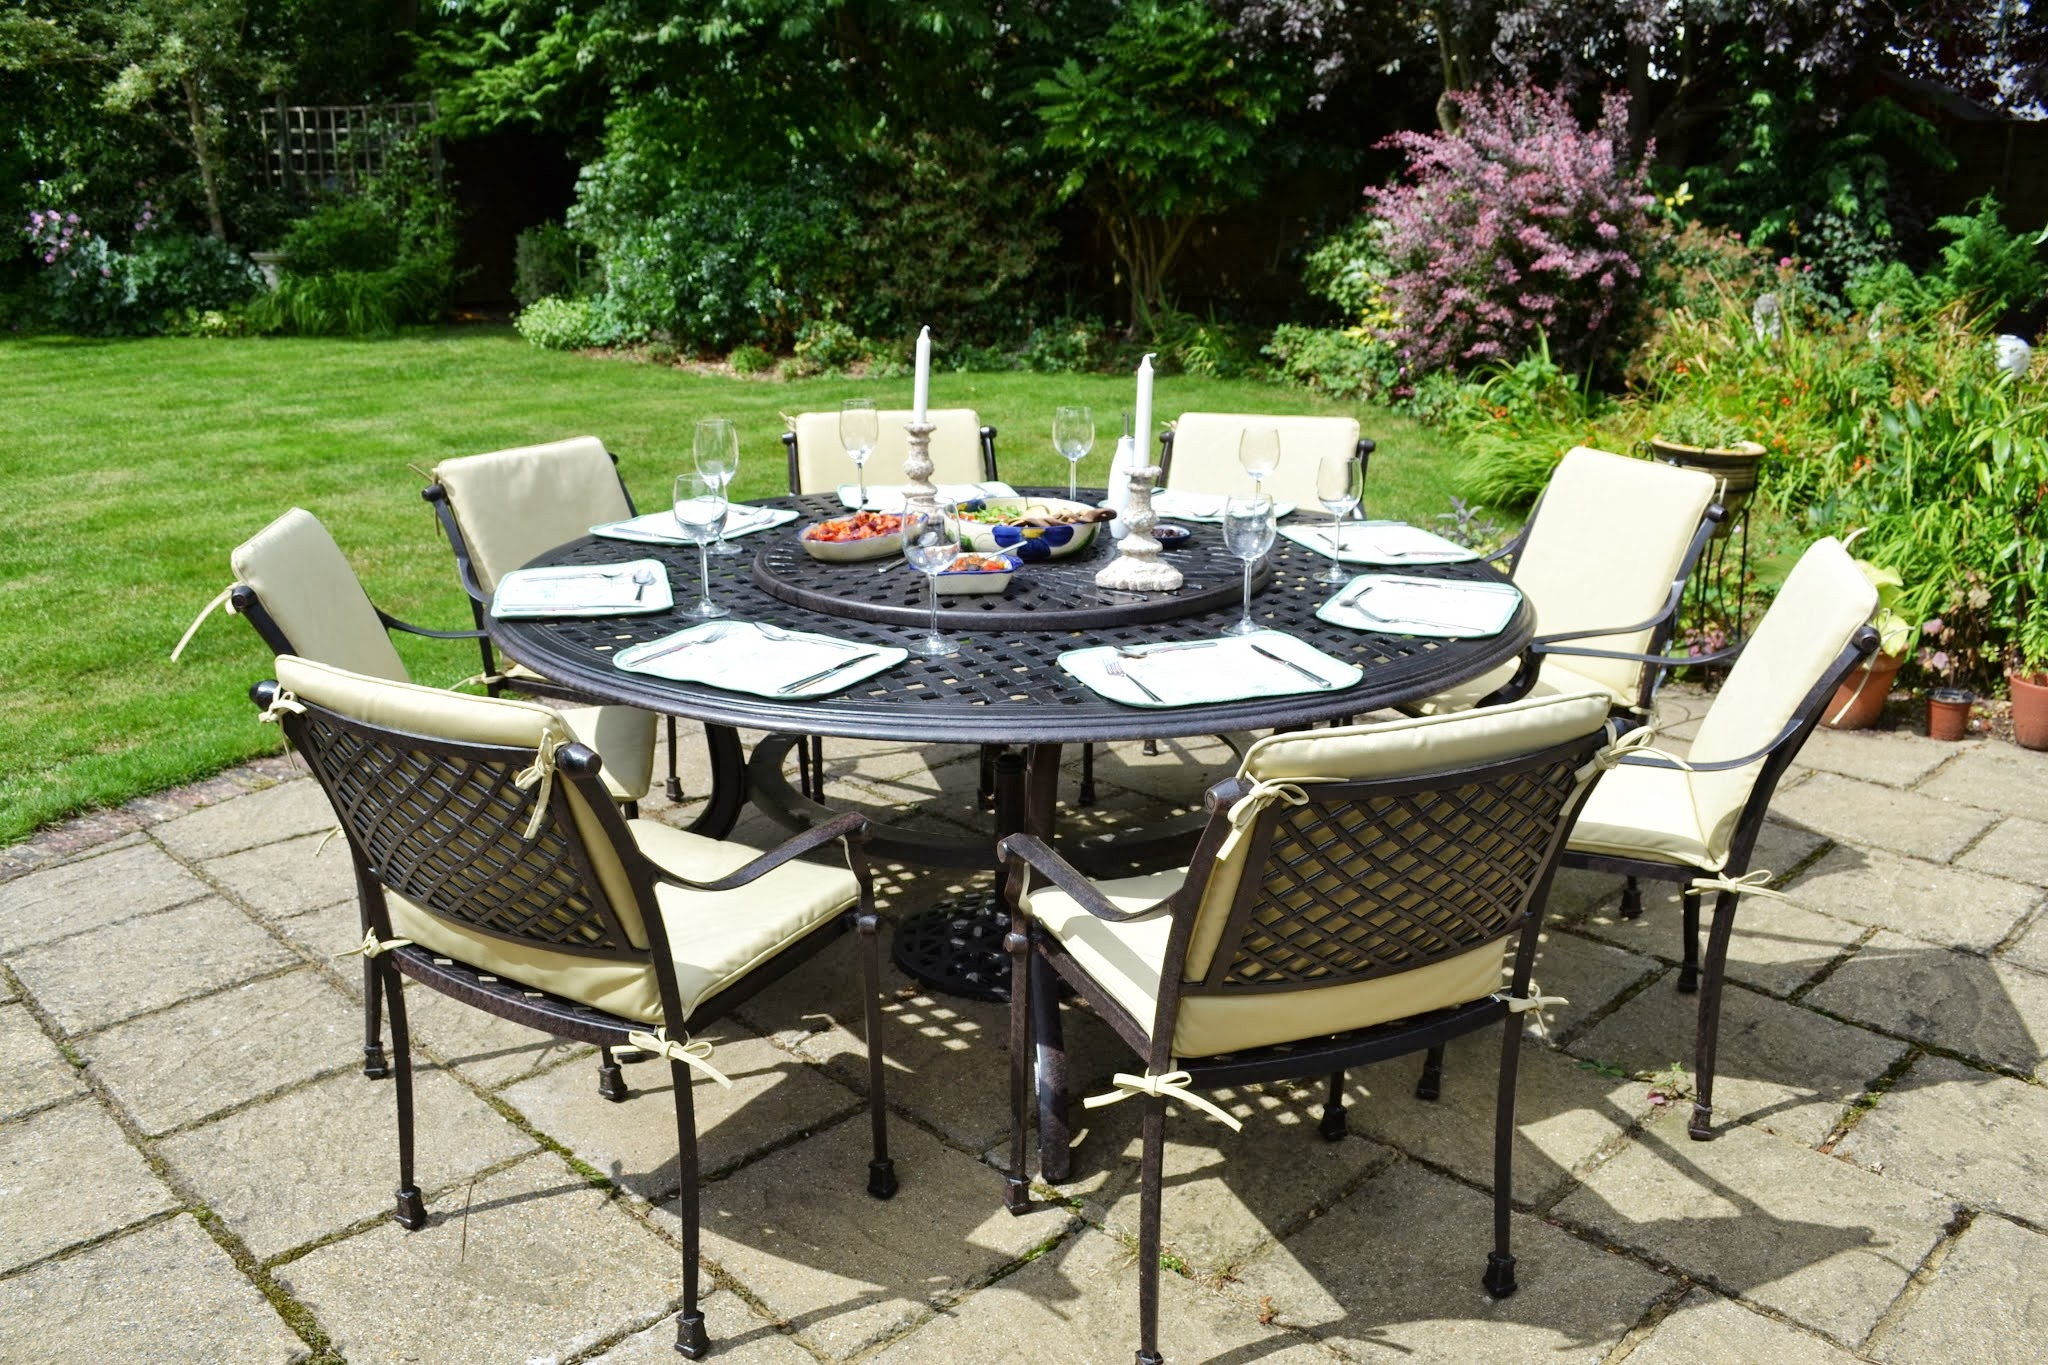 Comparatif tables de jardin plateau tournant le blog de lazy susan - Table de jardin octogonale ...